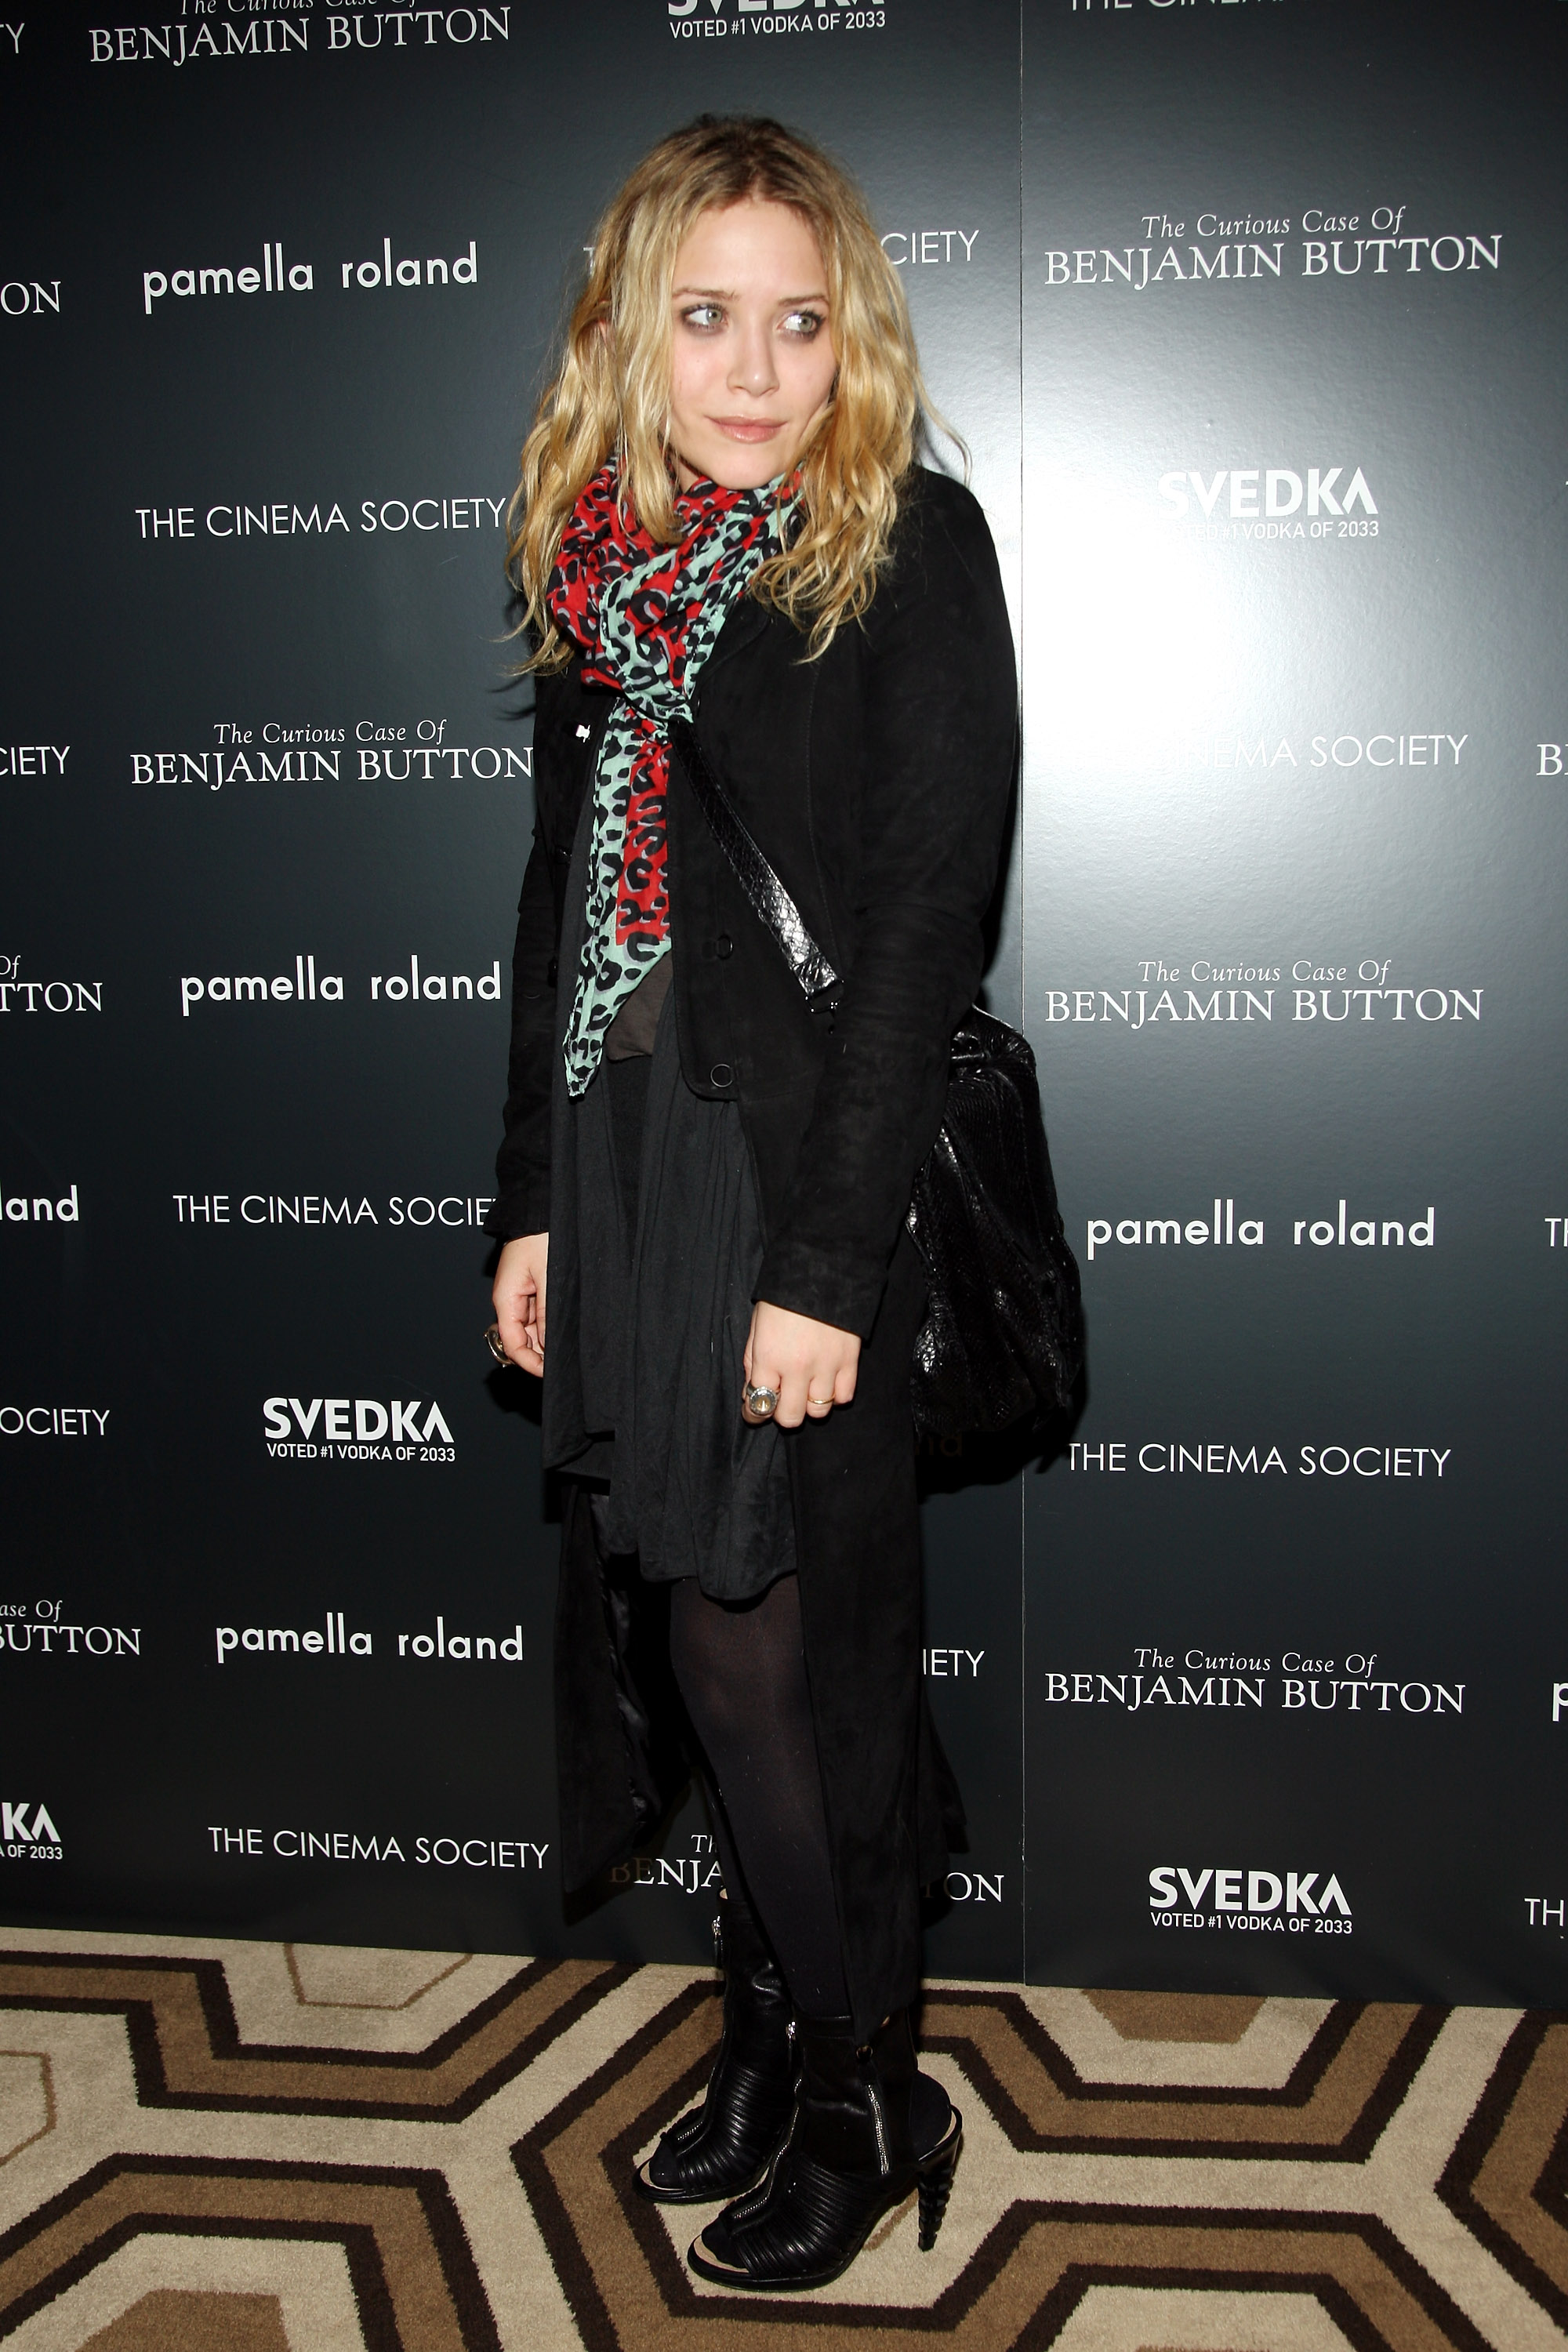 59292_Mary-Kate_Olsen_2008-12-11_-__Screening_of_The_Curious_Case_of_Benjamin_Button_830_122_100lo.jpg